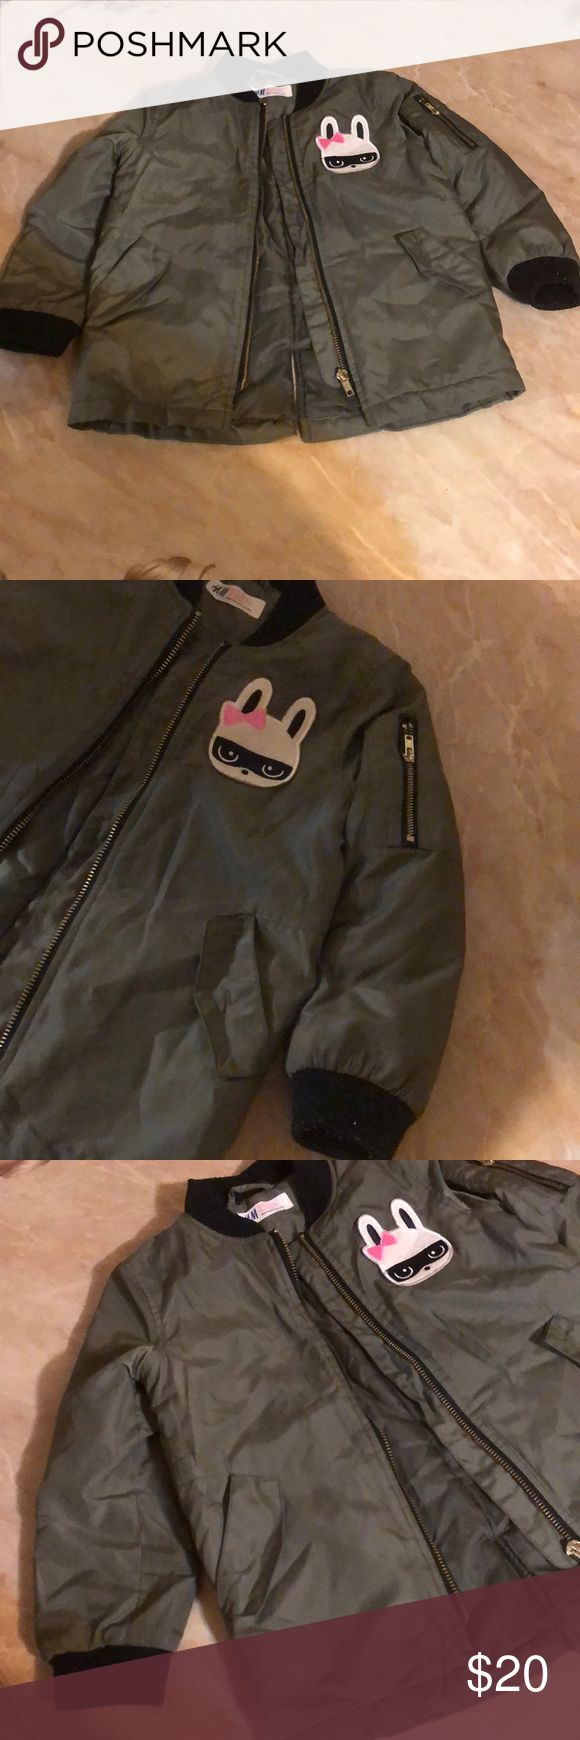 H&M TODDLER BOMBER JACKET Bomber jacket. Good condition. Size: 3-4 H&M Jackets & Coats Puffers